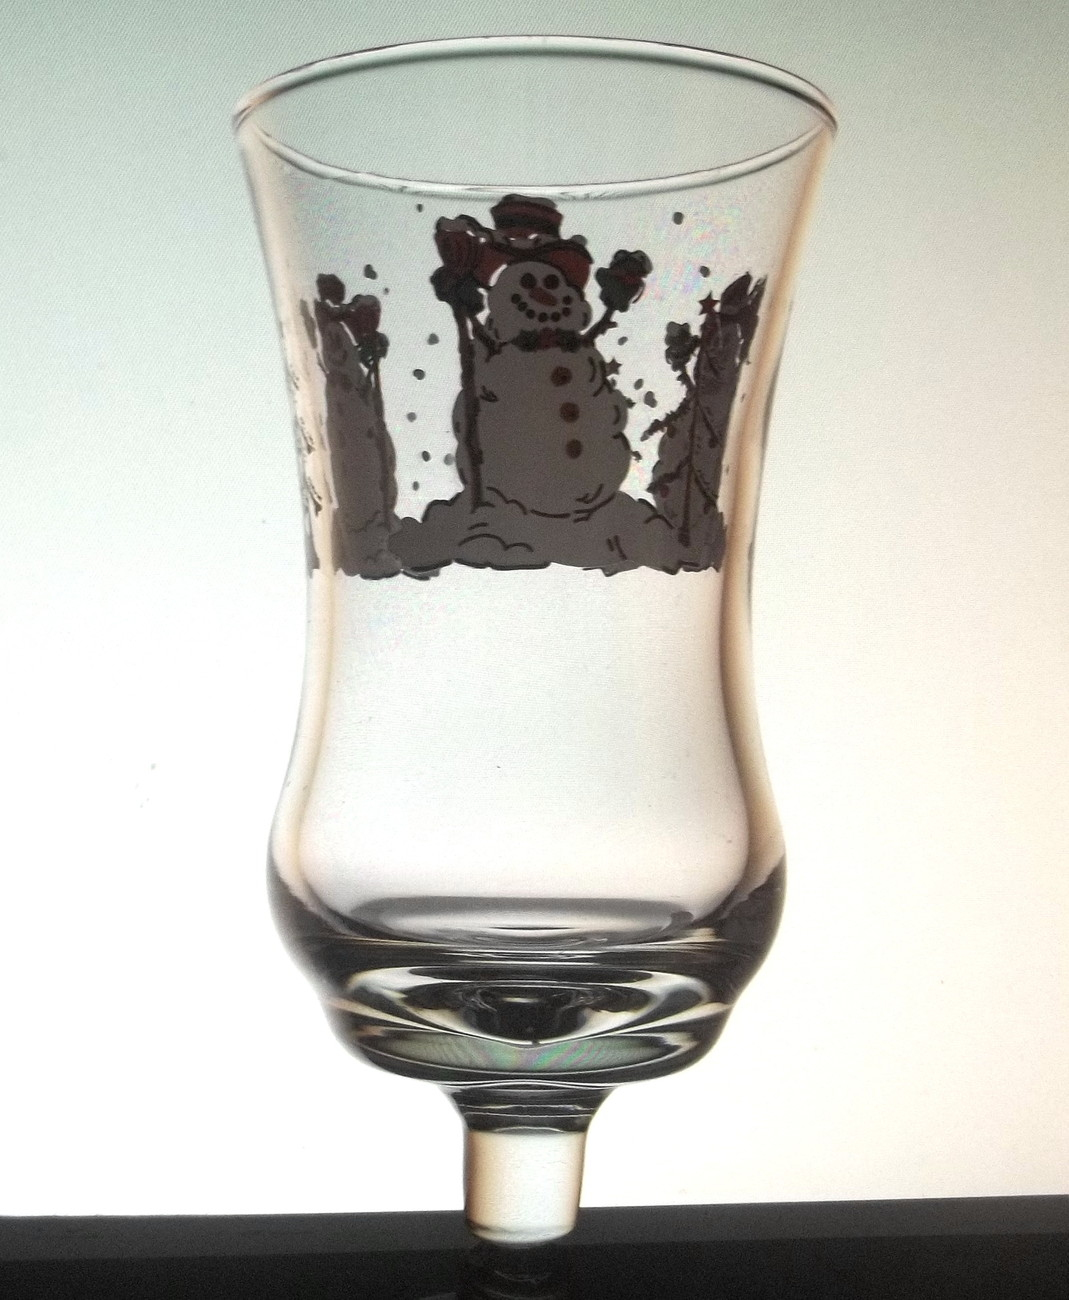 Home Interiors Peg Votive Holder Cup Glass Snowman Clear